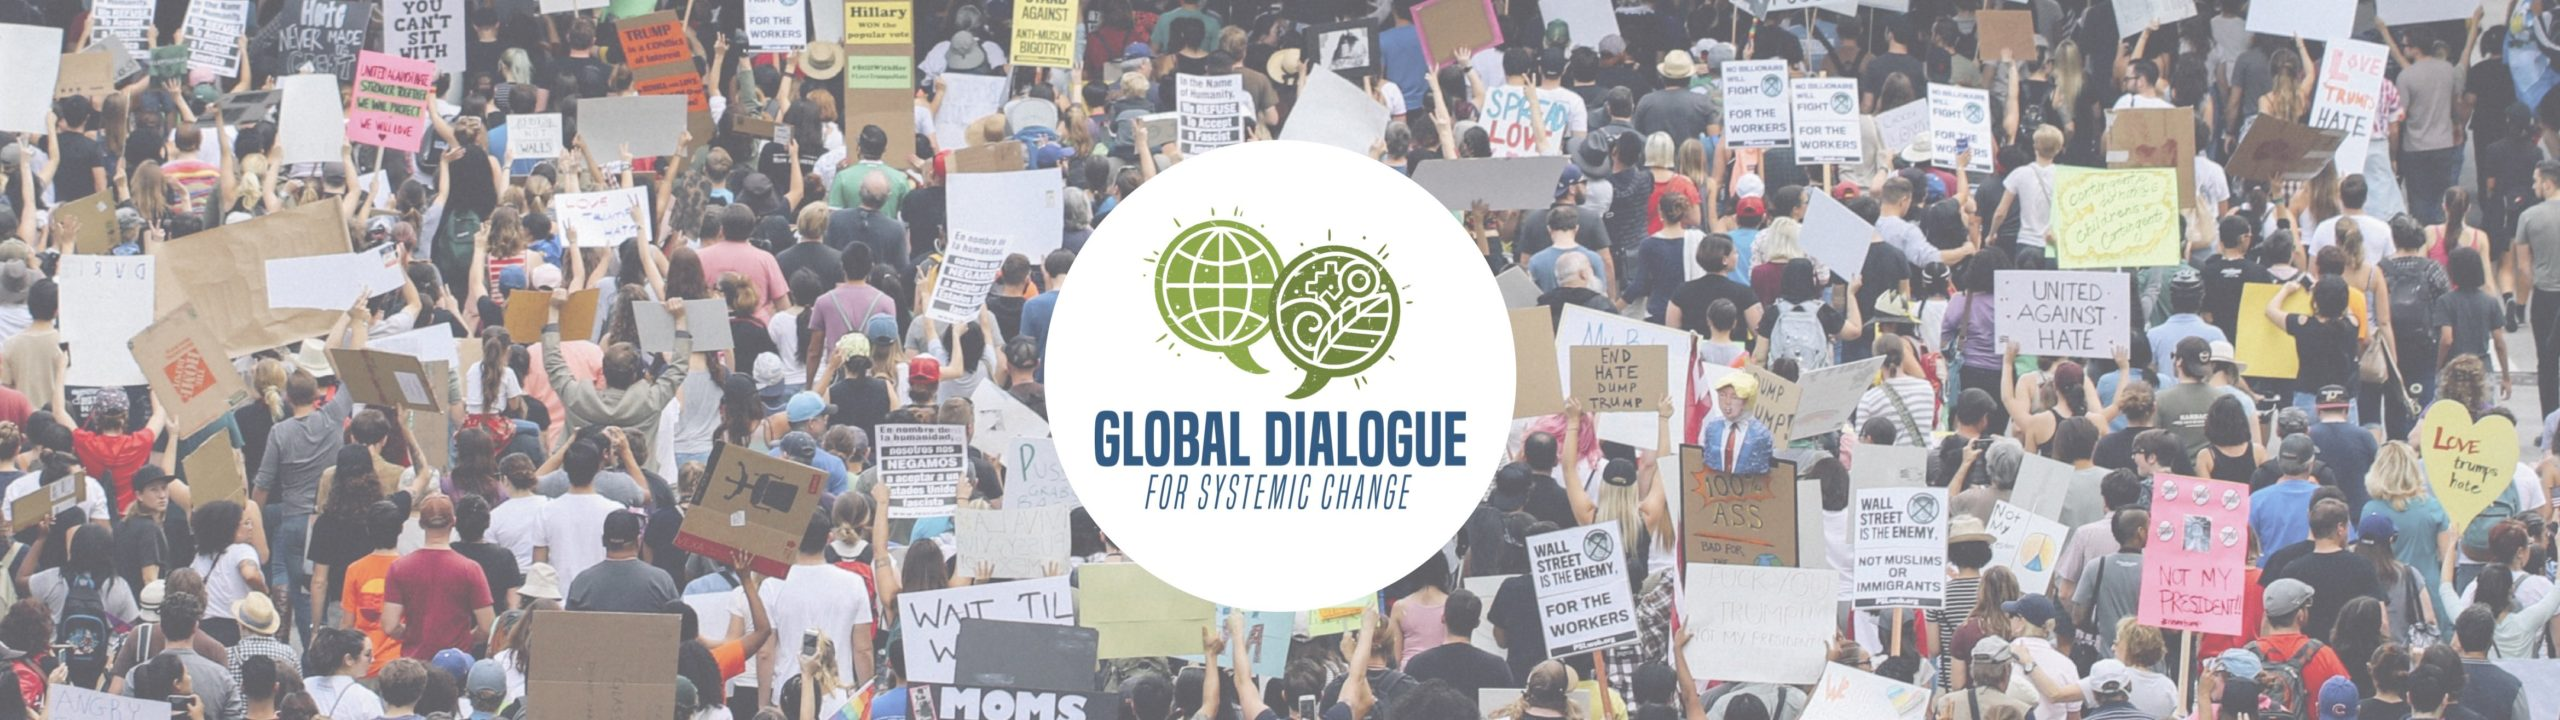 Global Dialogue for Systemic Change